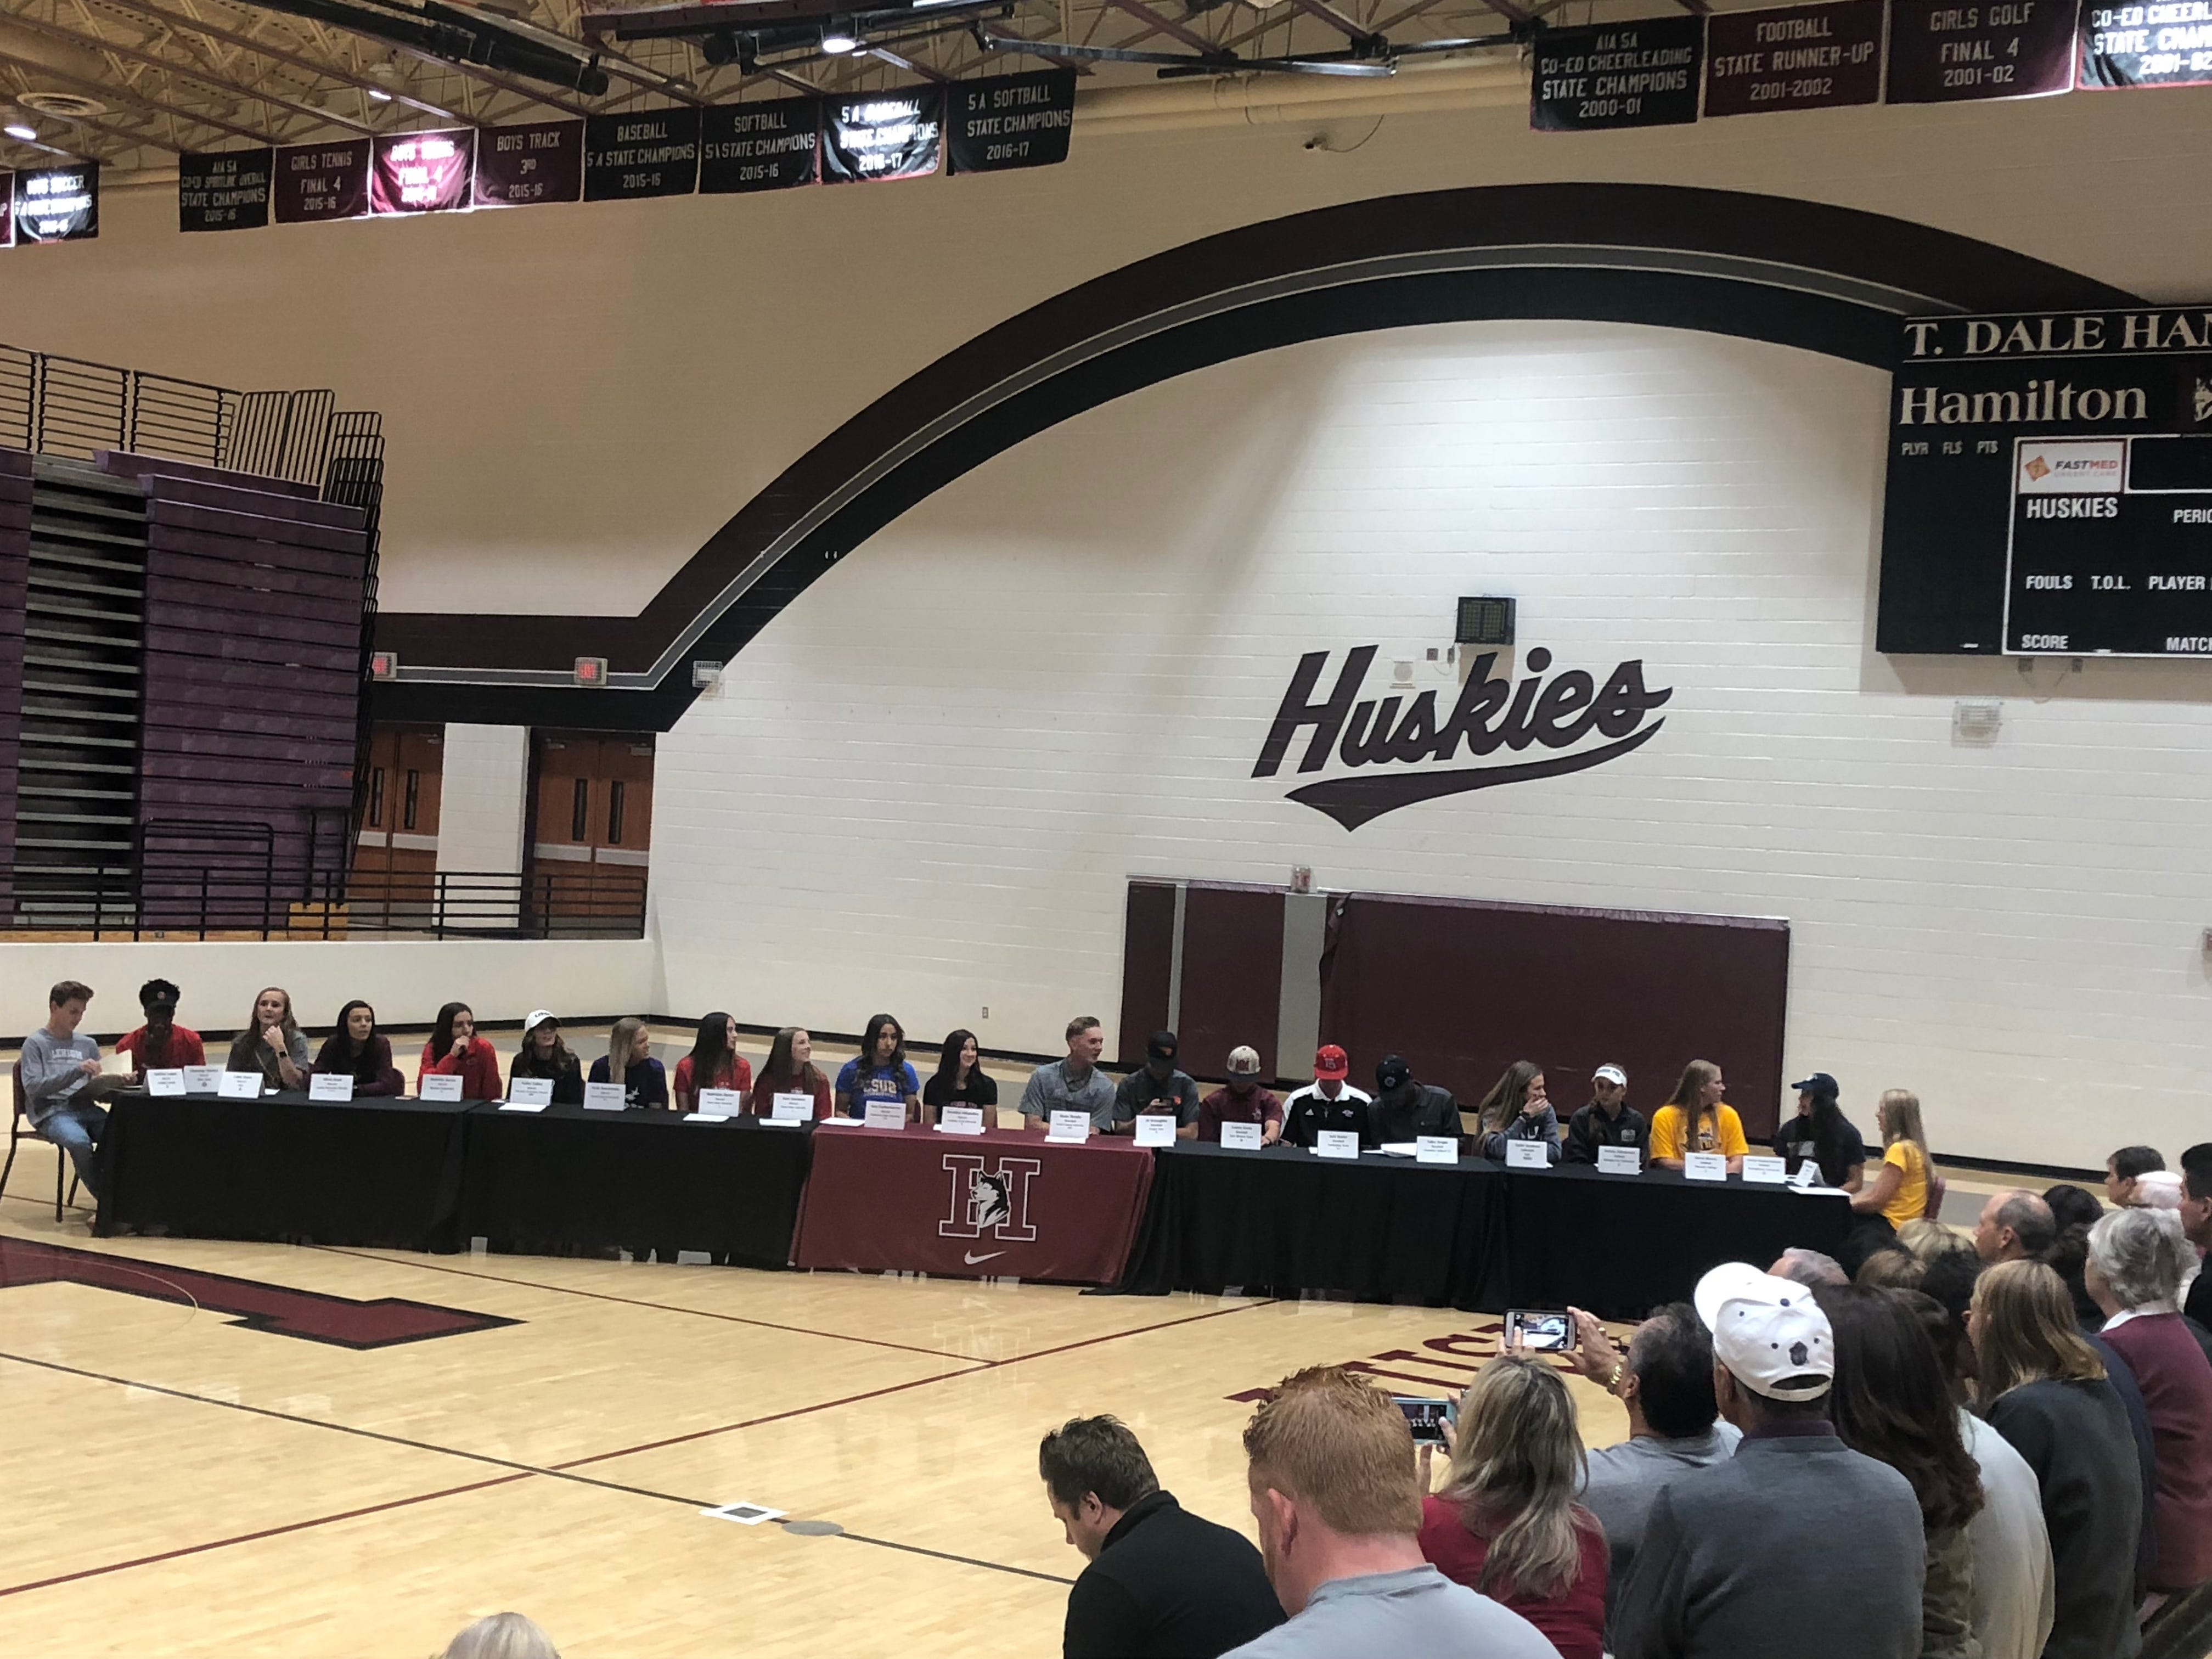 At Chandler Hamilton High School on Nov. 14, 2018, 21 athletes signed their letters of intent to play college sports, including nine girls soccer players.